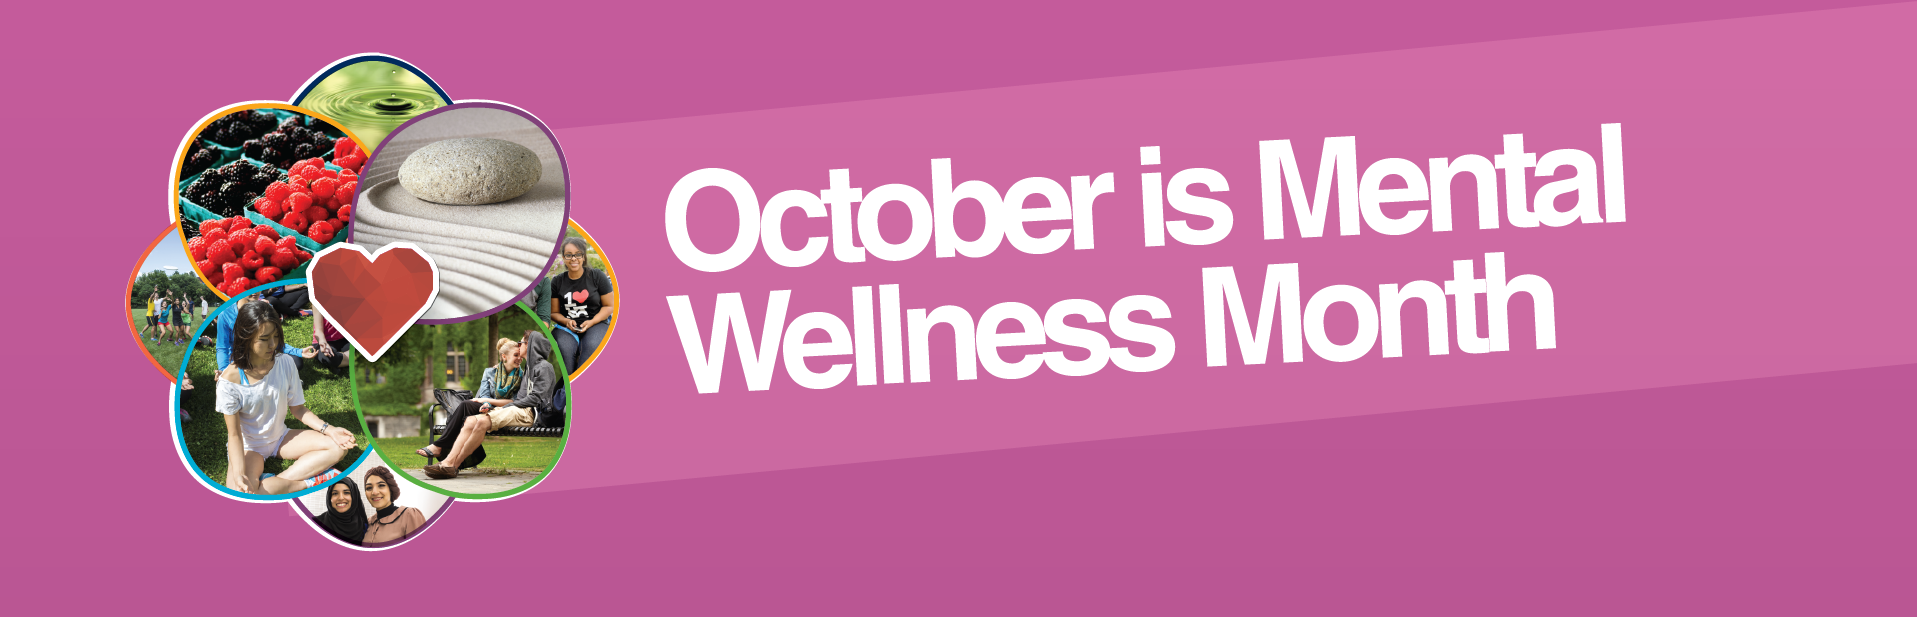 "A banner that reads ""October is Mental Wellness Month"""